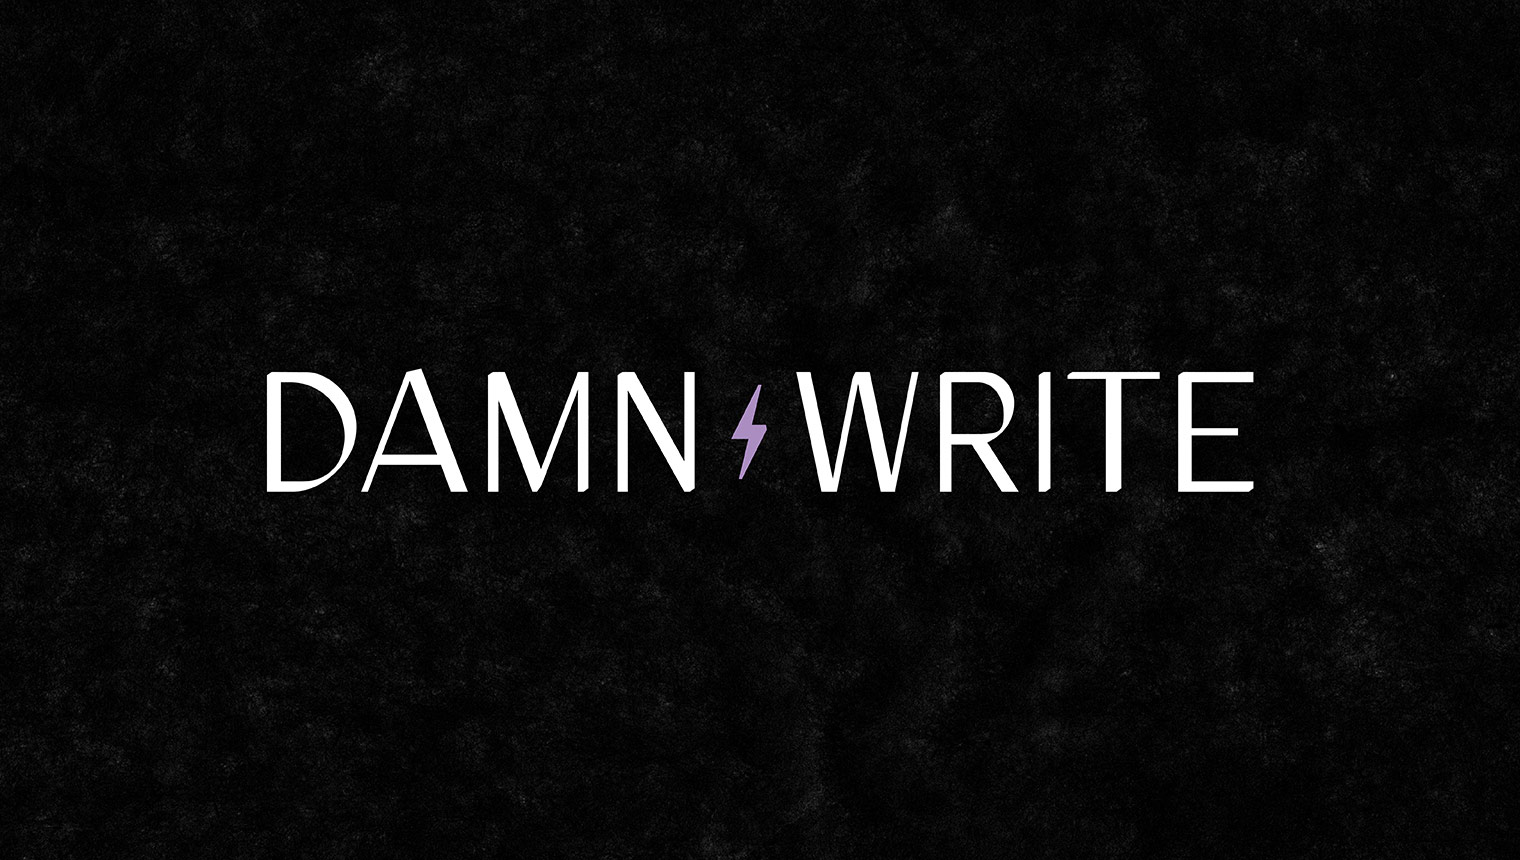 Minimal serif logotype and icon for e-commerce copywriter damn write by Obscurio and co